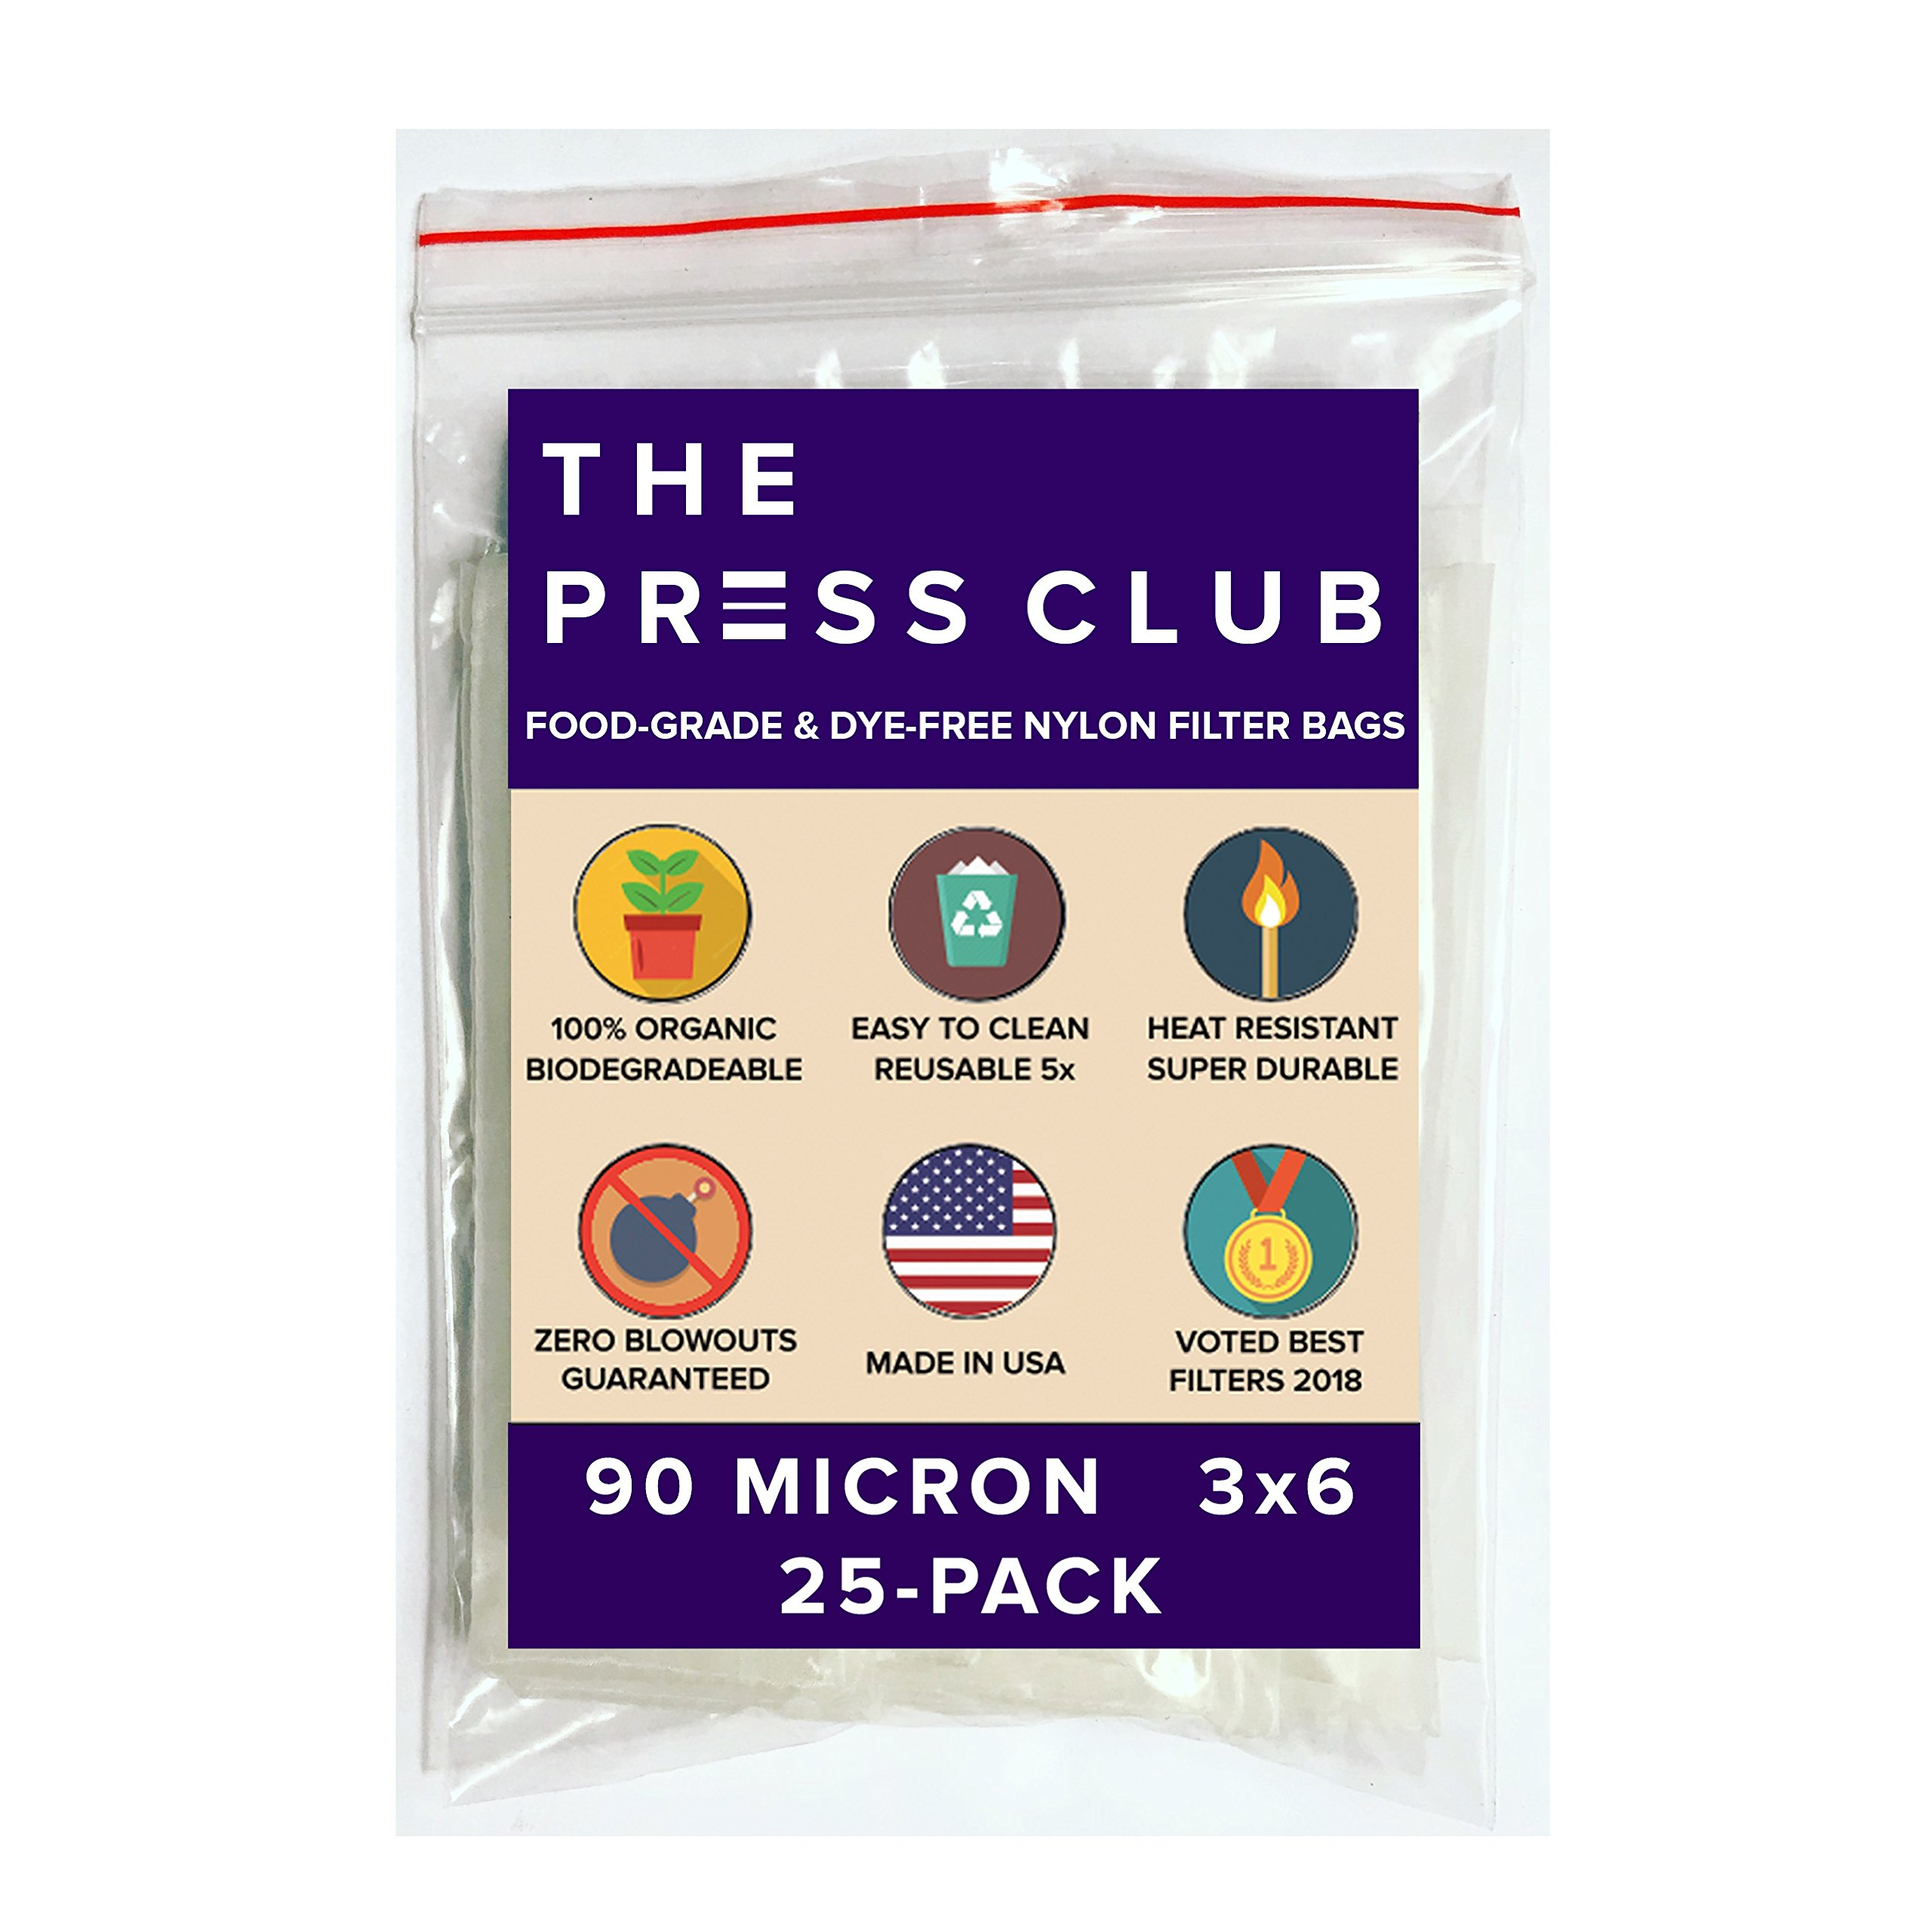 90 Micron | Premium Nylon Tea Filter Press Screen Bags | 3'' x 6'' | 25 Pack | Zero Blowout Guarantee | All Micron & Sizes Available